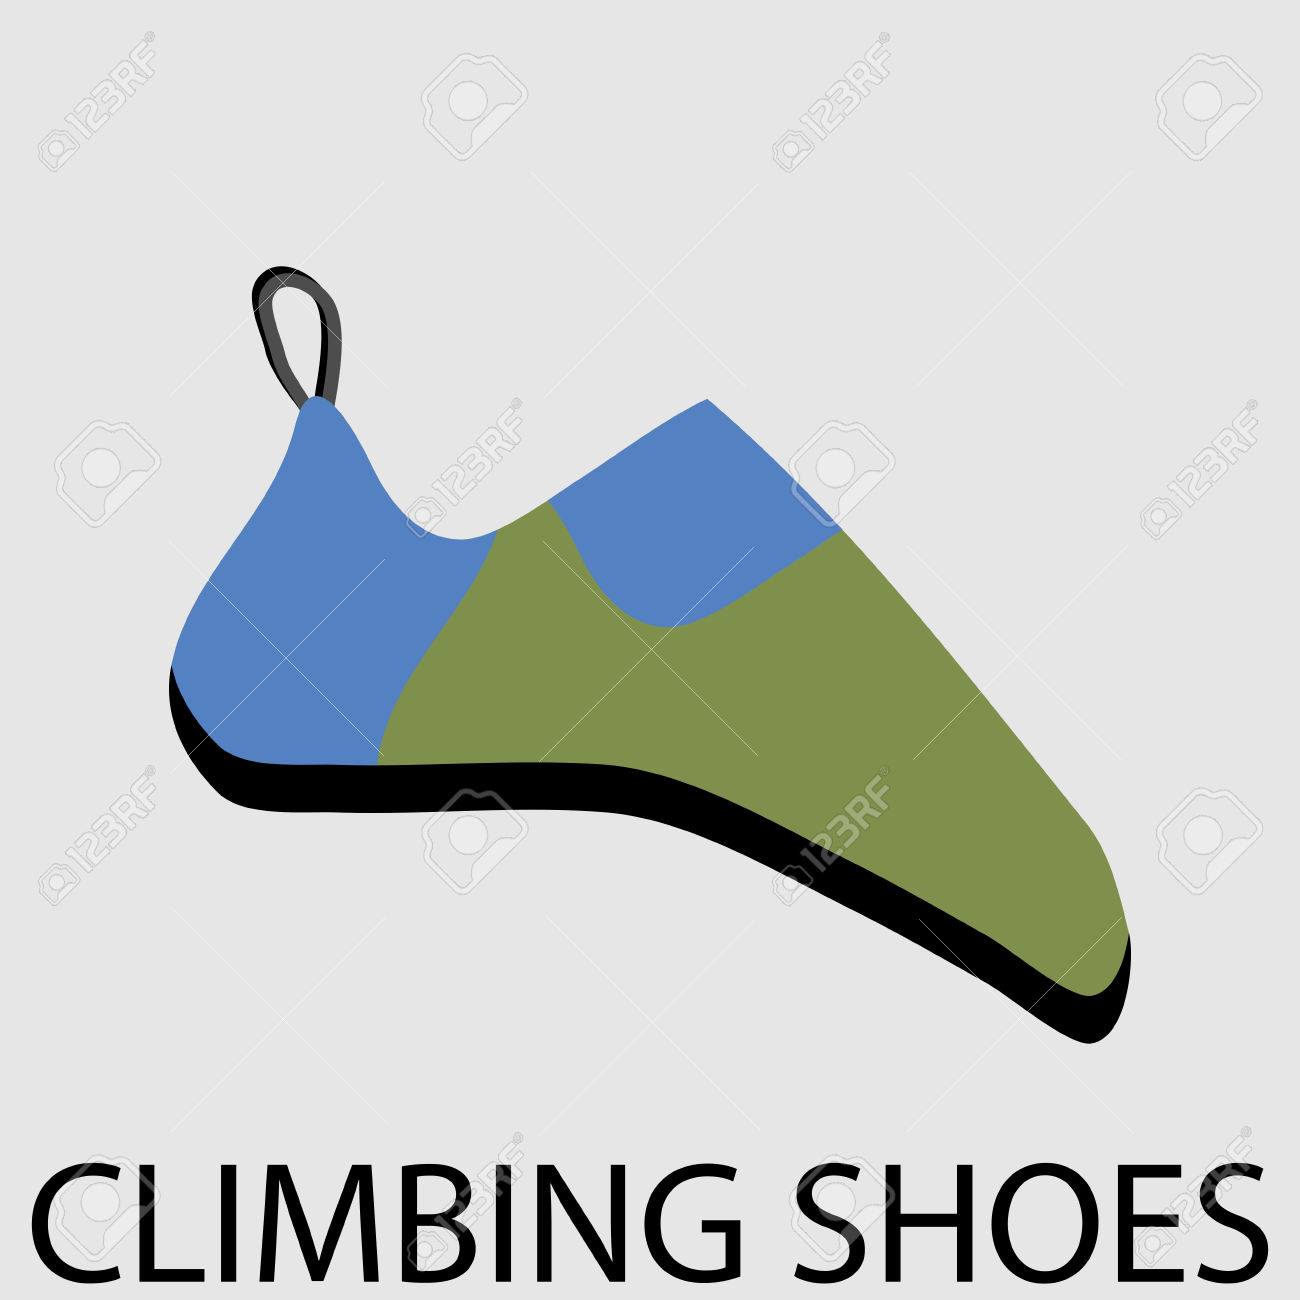 Extreme Climbing clipart #8, Download drawings